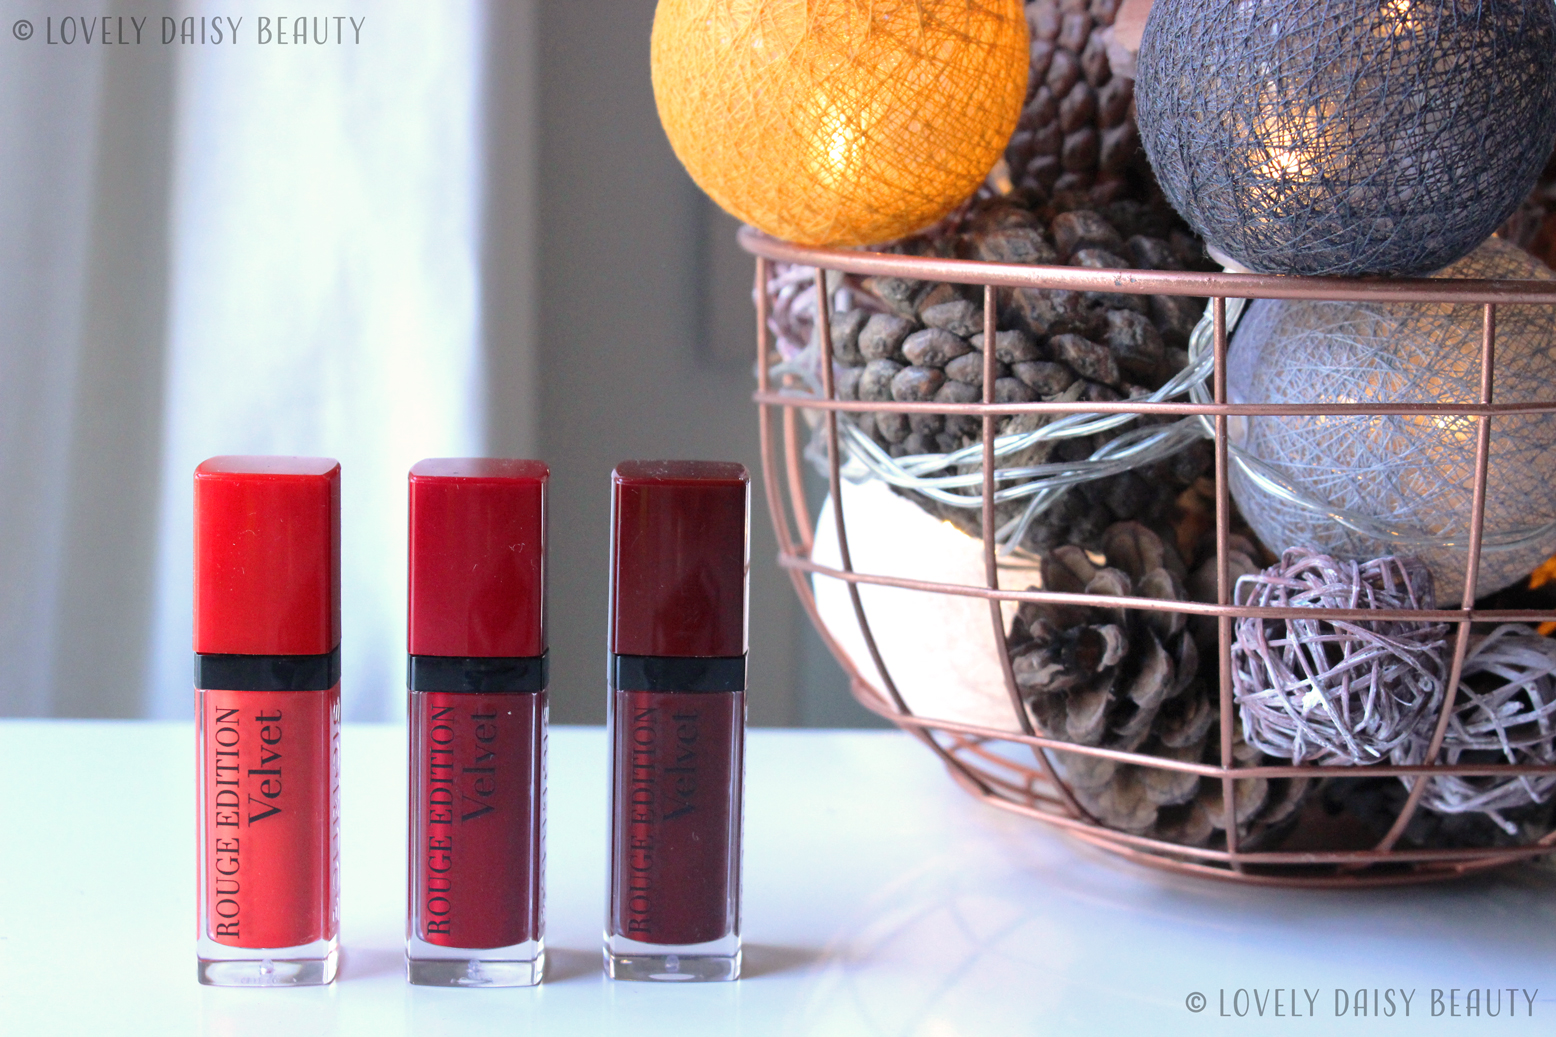 Rouge-Edition-Velvet-poppy-days-redvolution-jolie-de-vin1